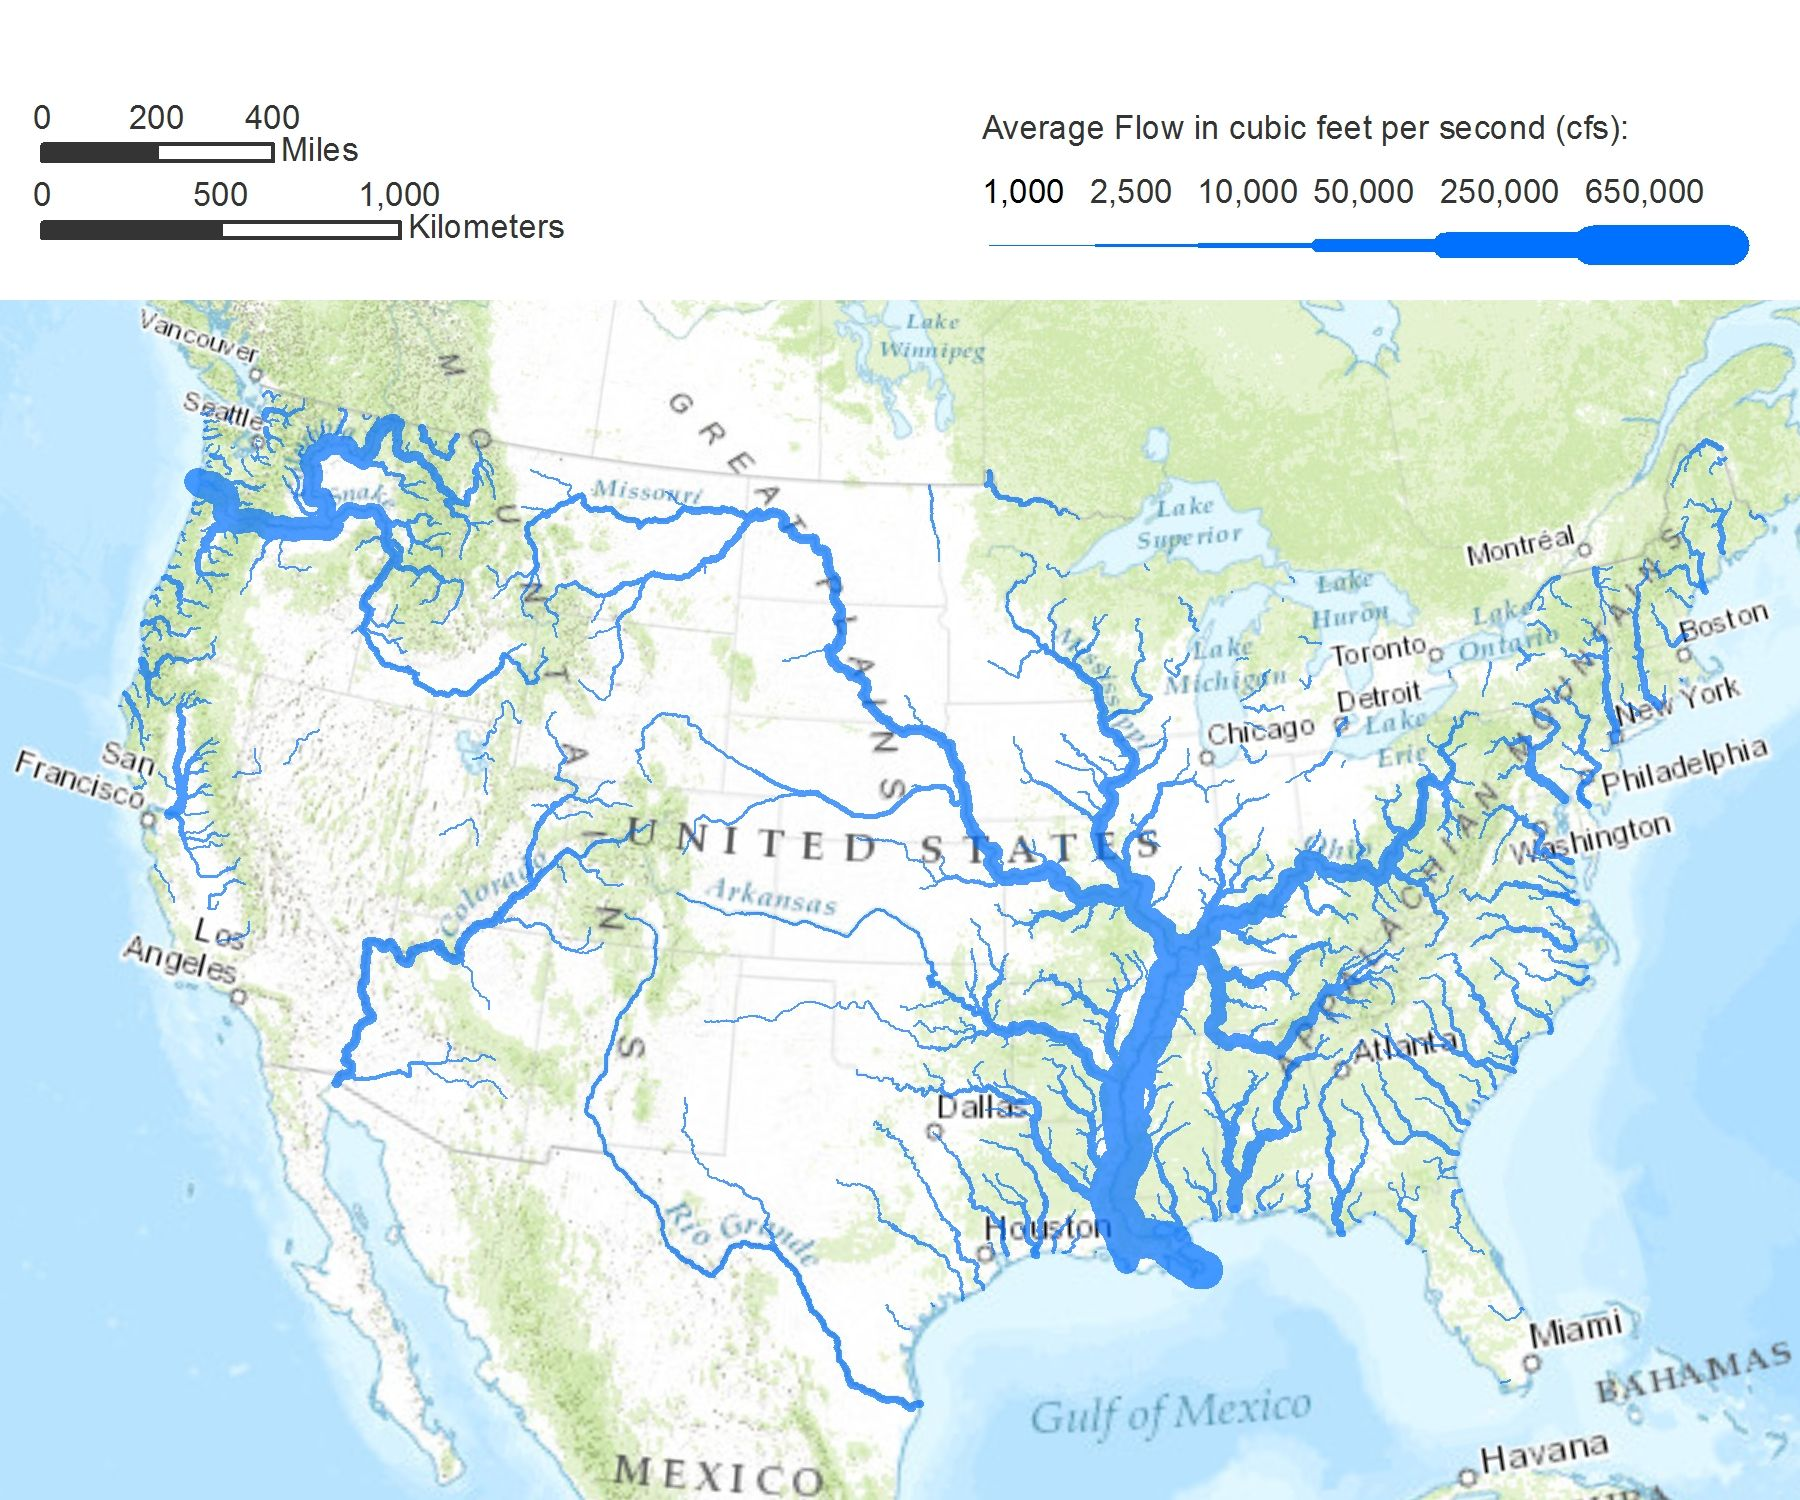 Flow Rates A Map Of The United States Illustrating Flow Rates Of - Us map population proportion to smallest state grid